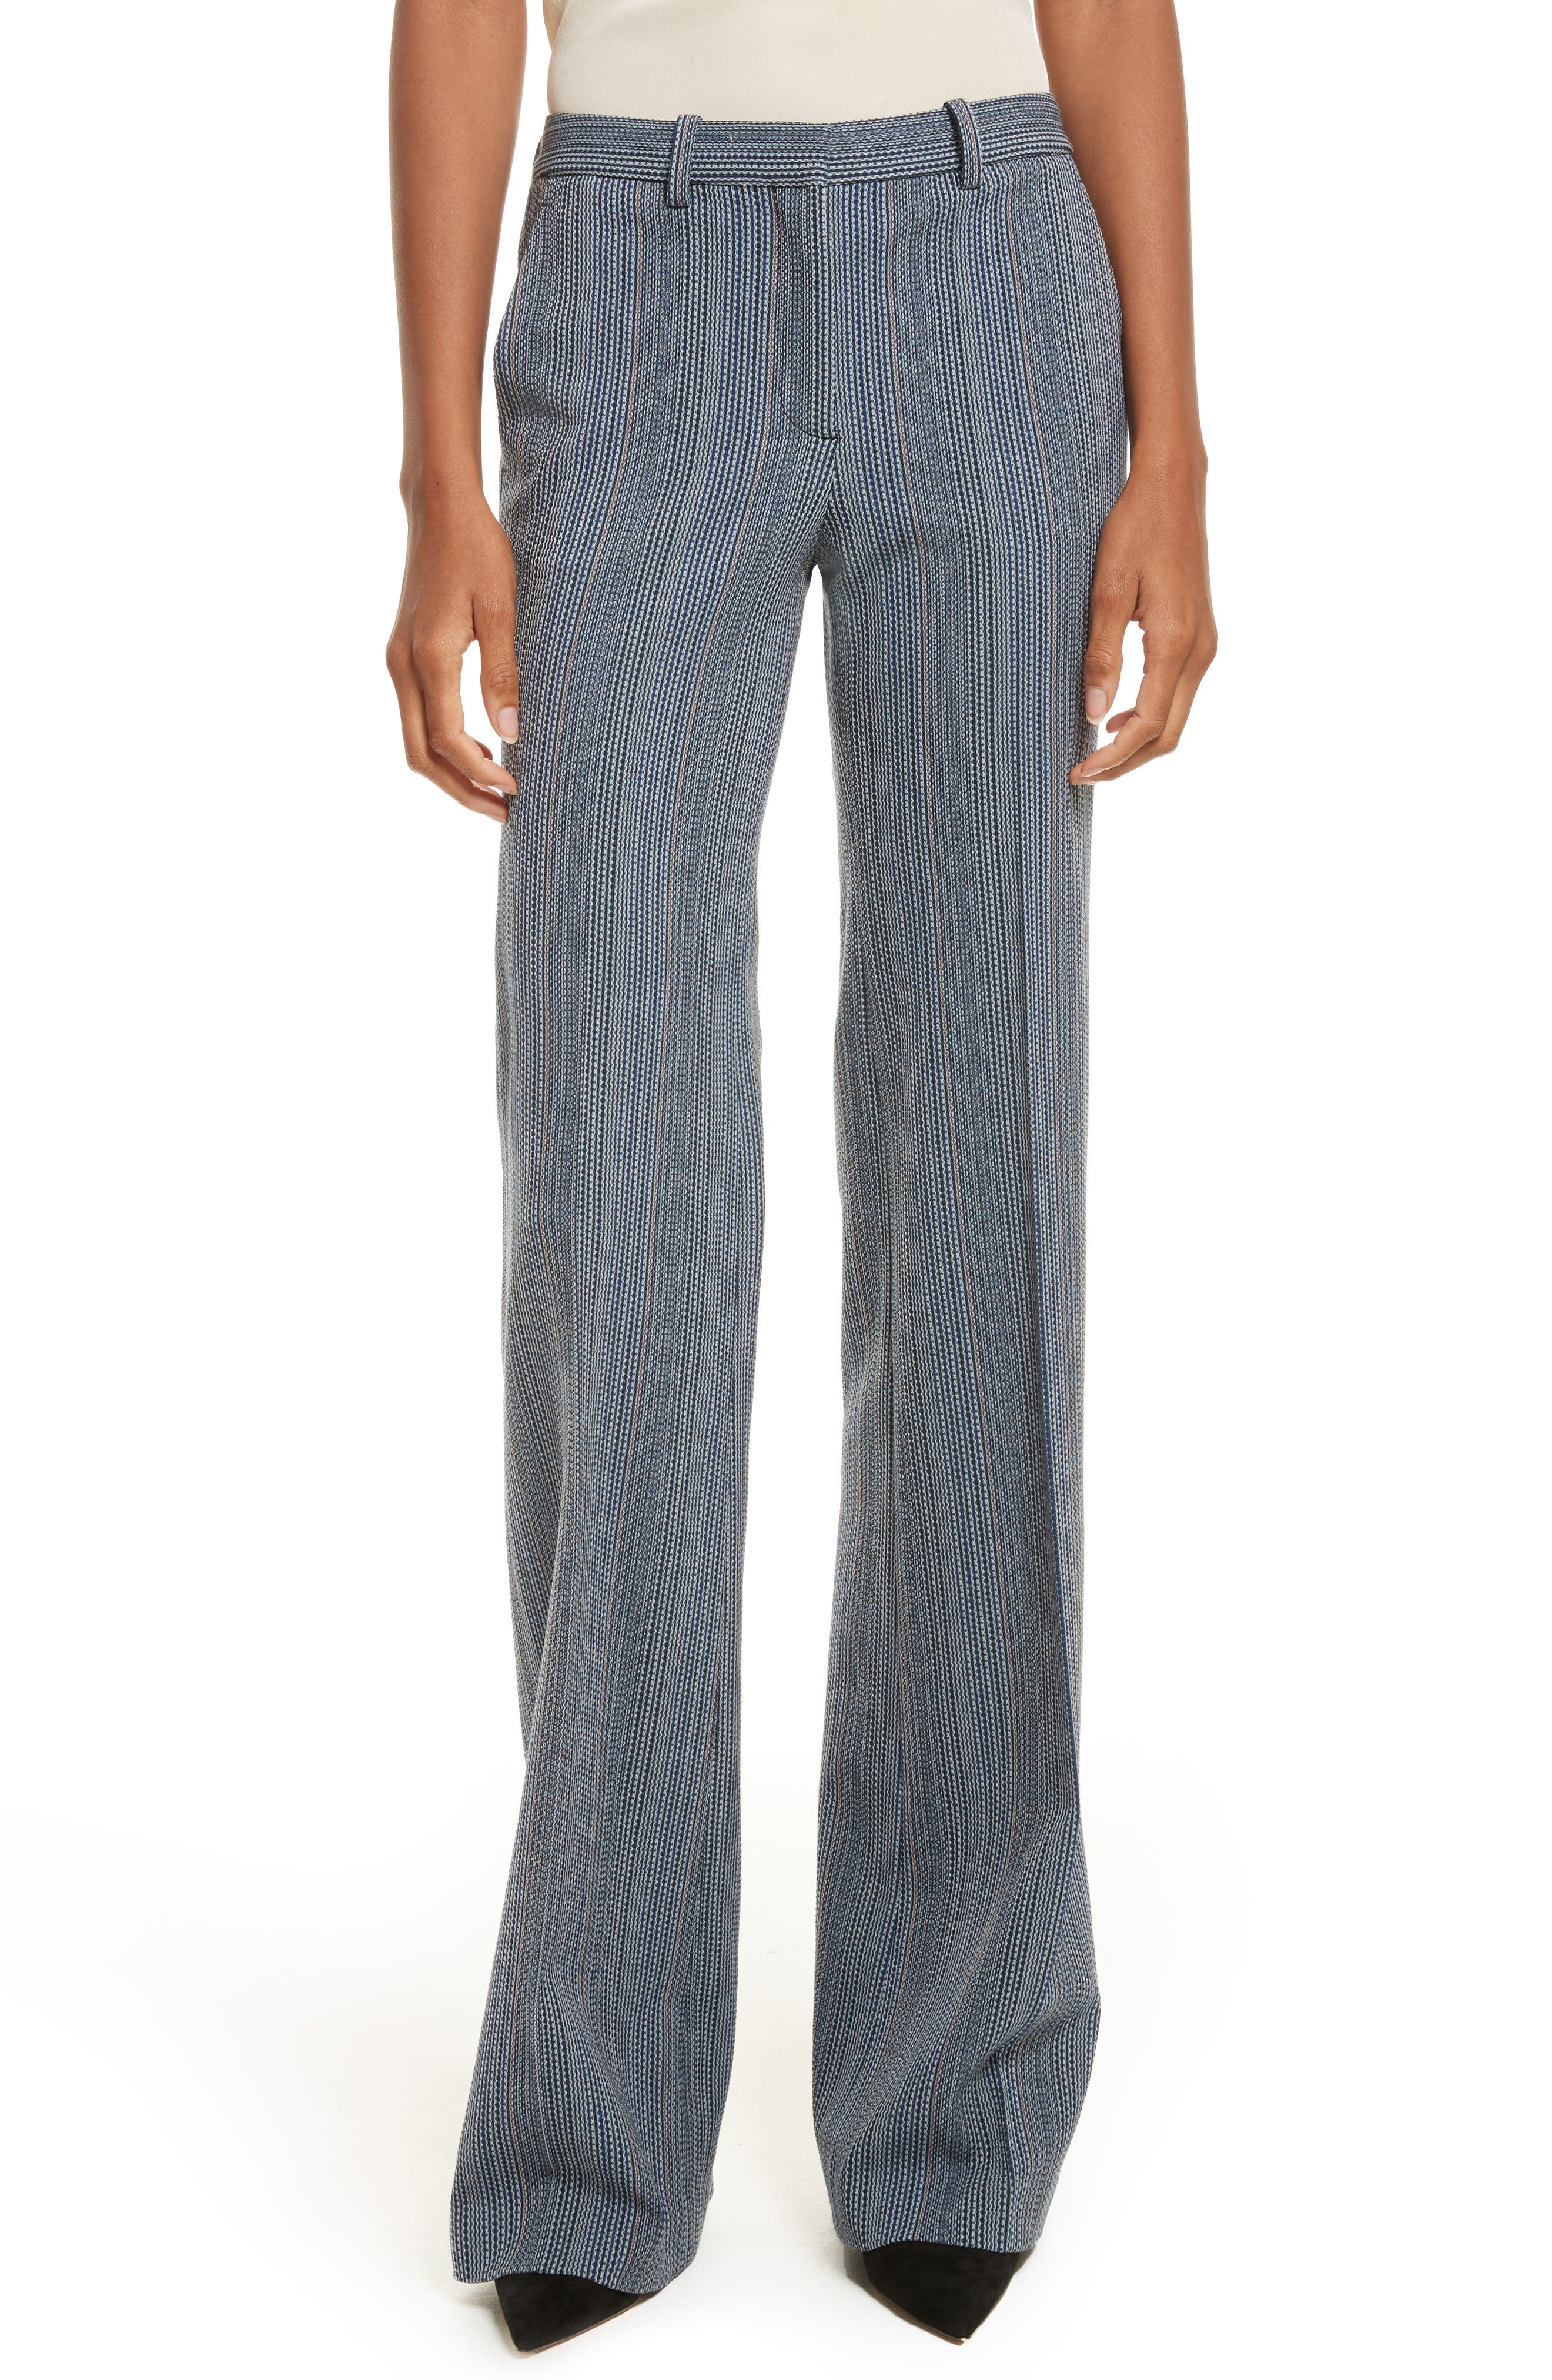 Demitria 2 Eldora Stripe Pants,                             Main thumbnail 1, color,                             Indigo Multi